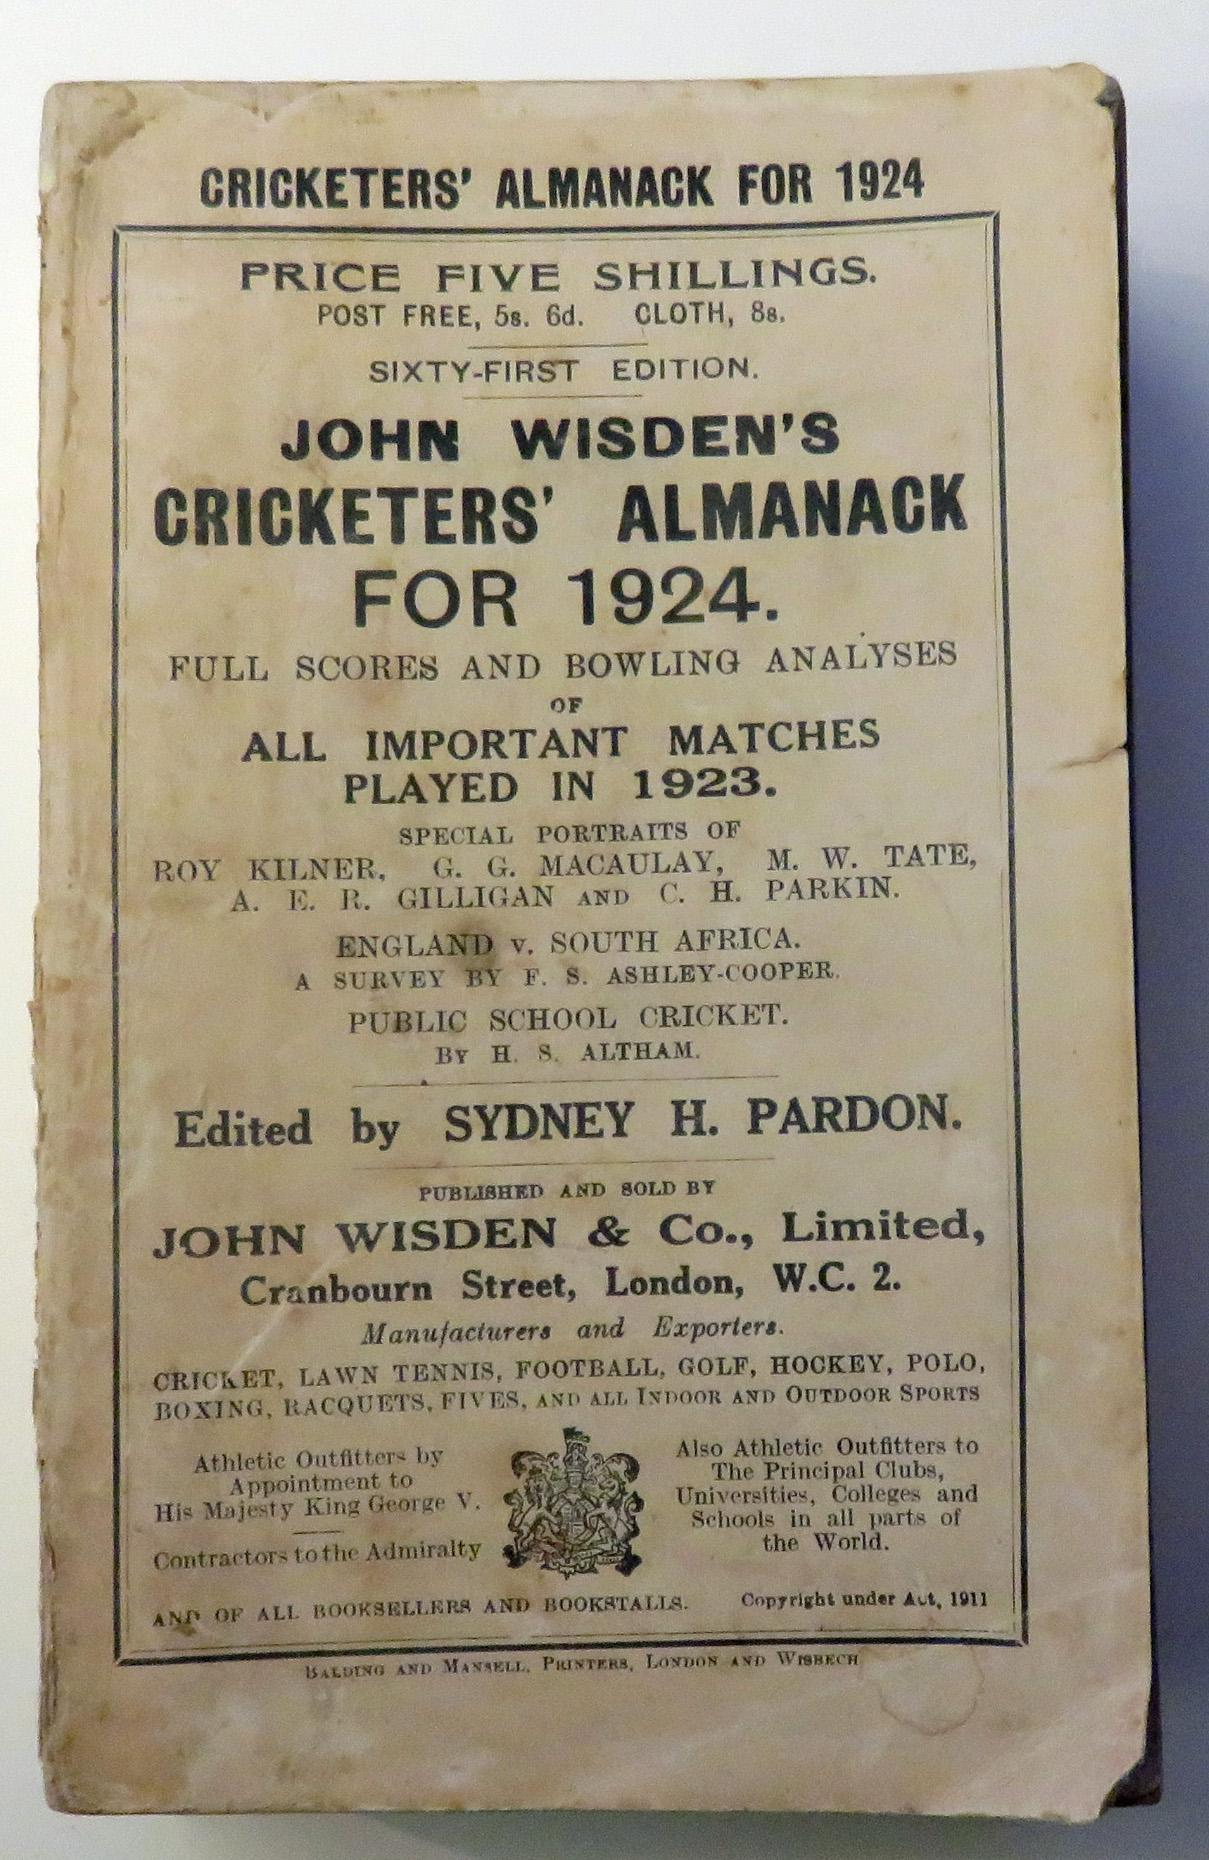 **John Wisden's Cricketers' Almanack For 1924